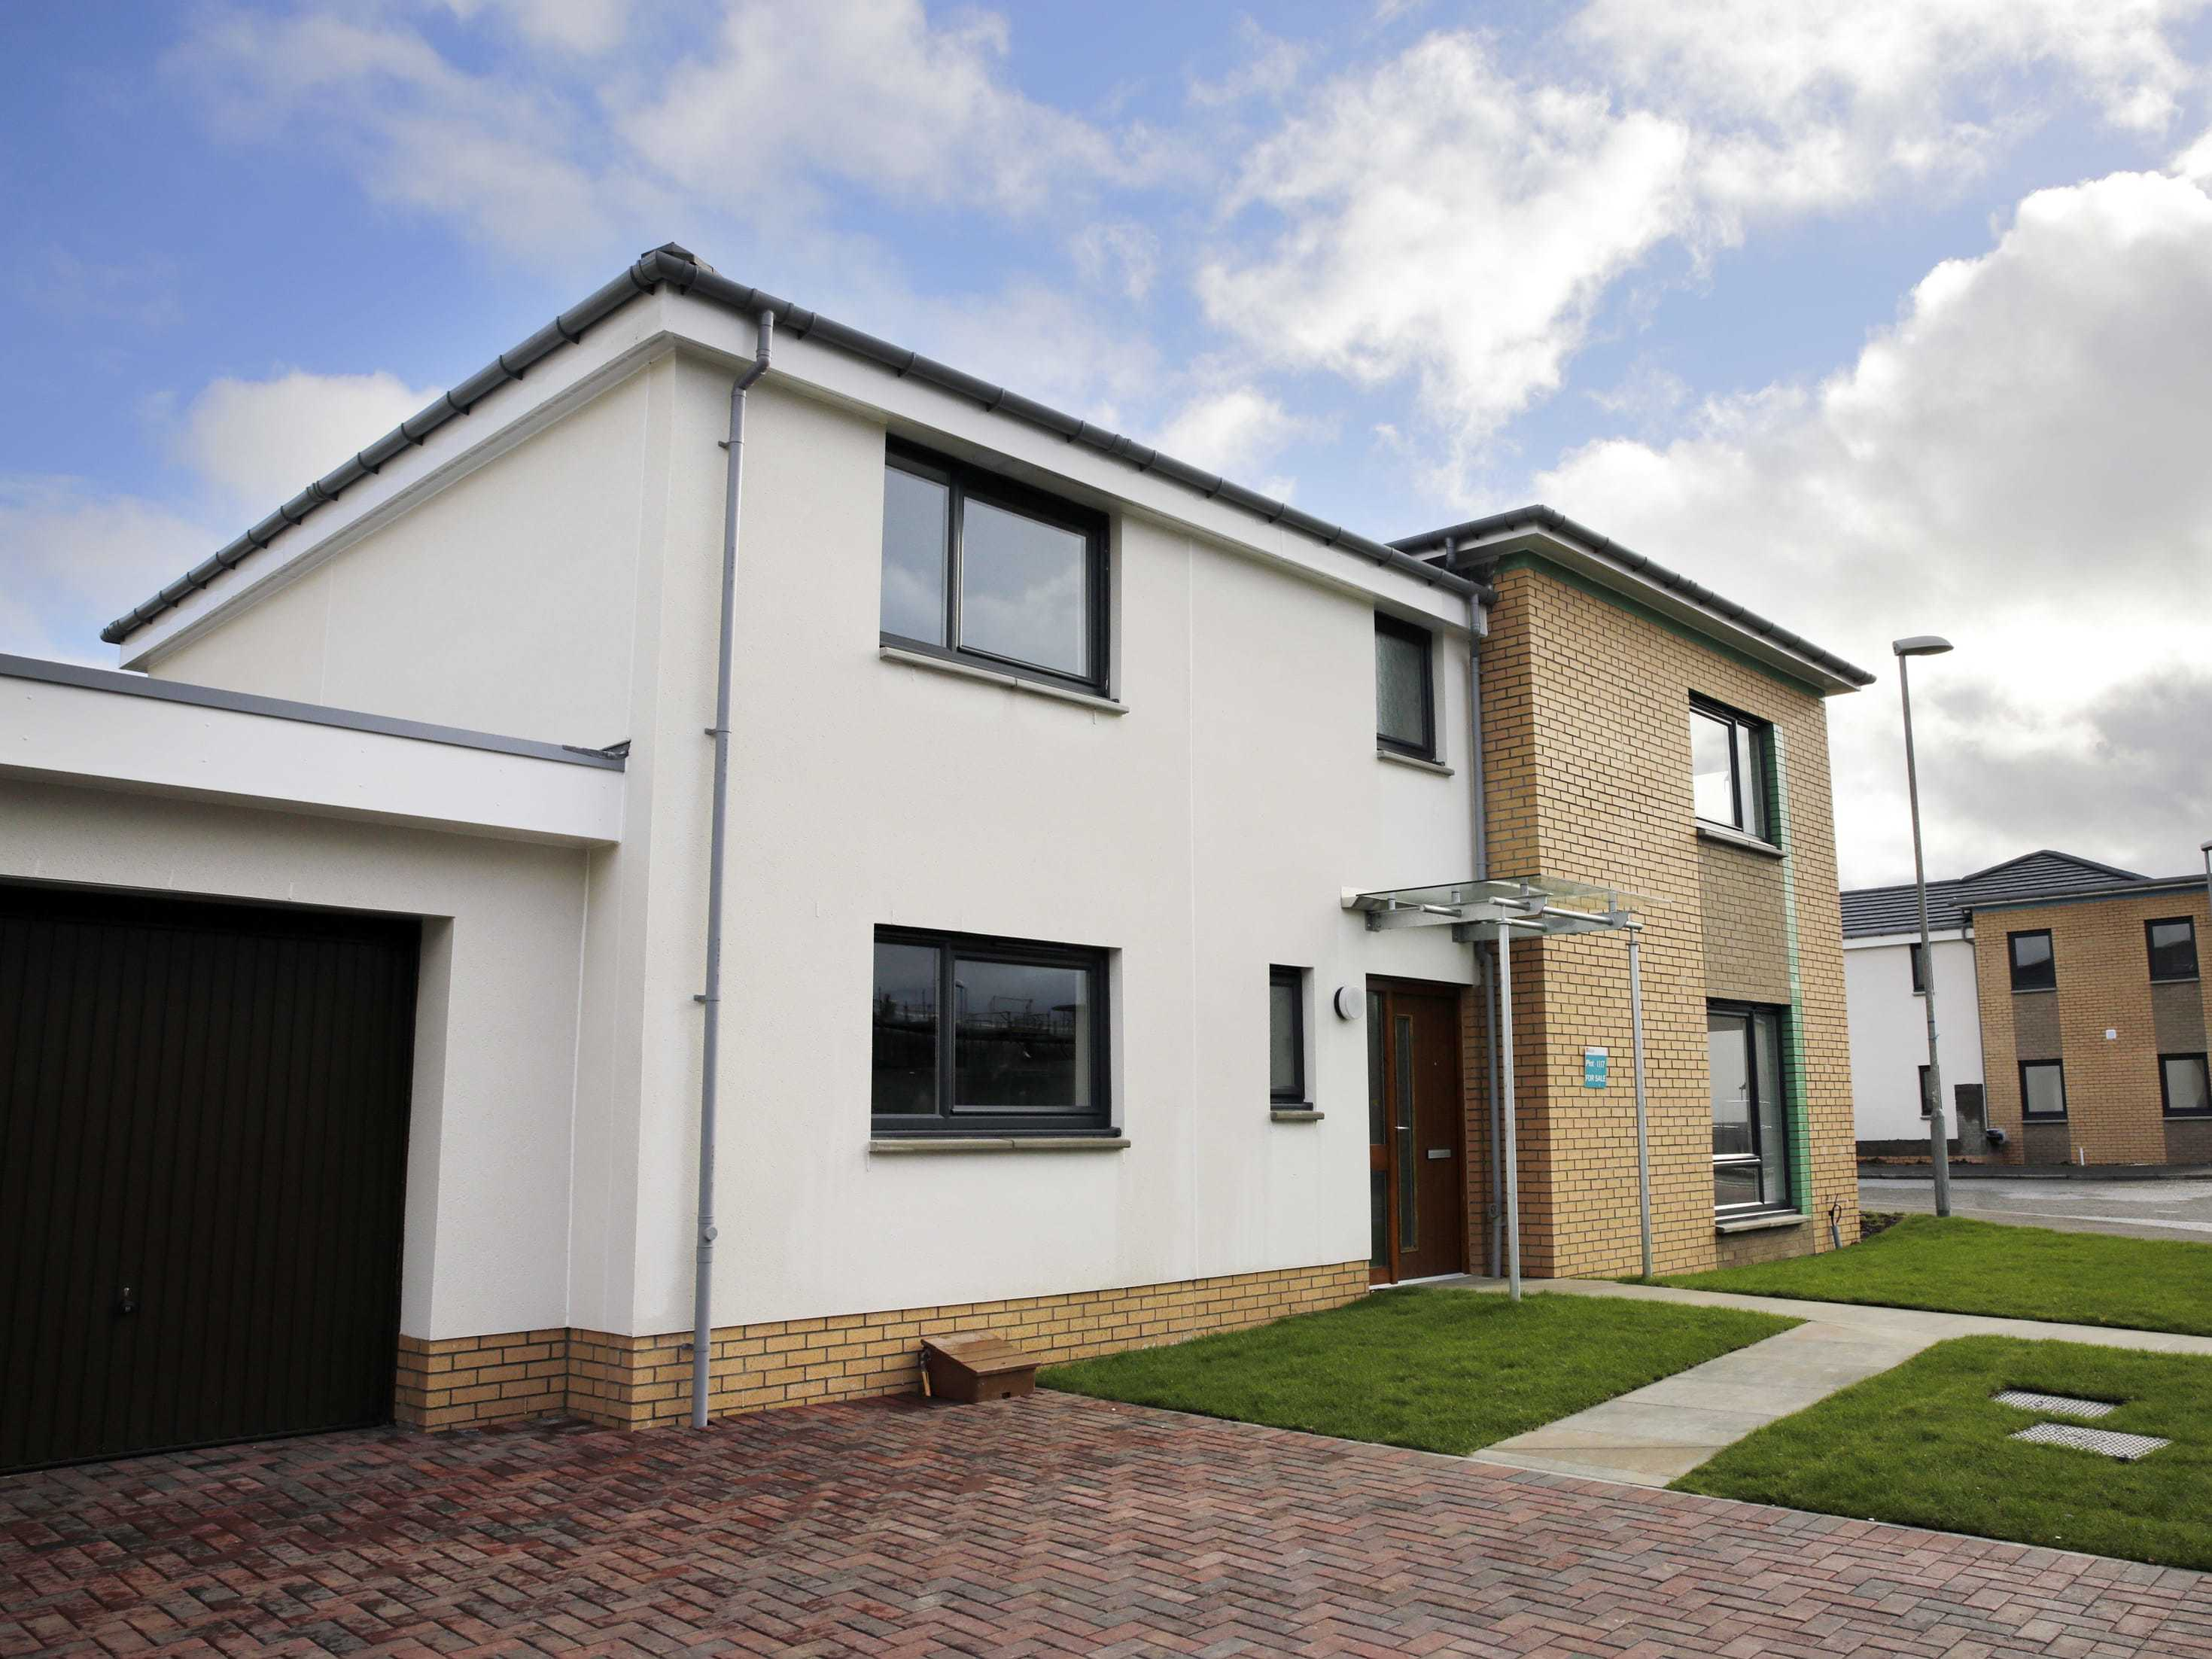 New homes in Paisley